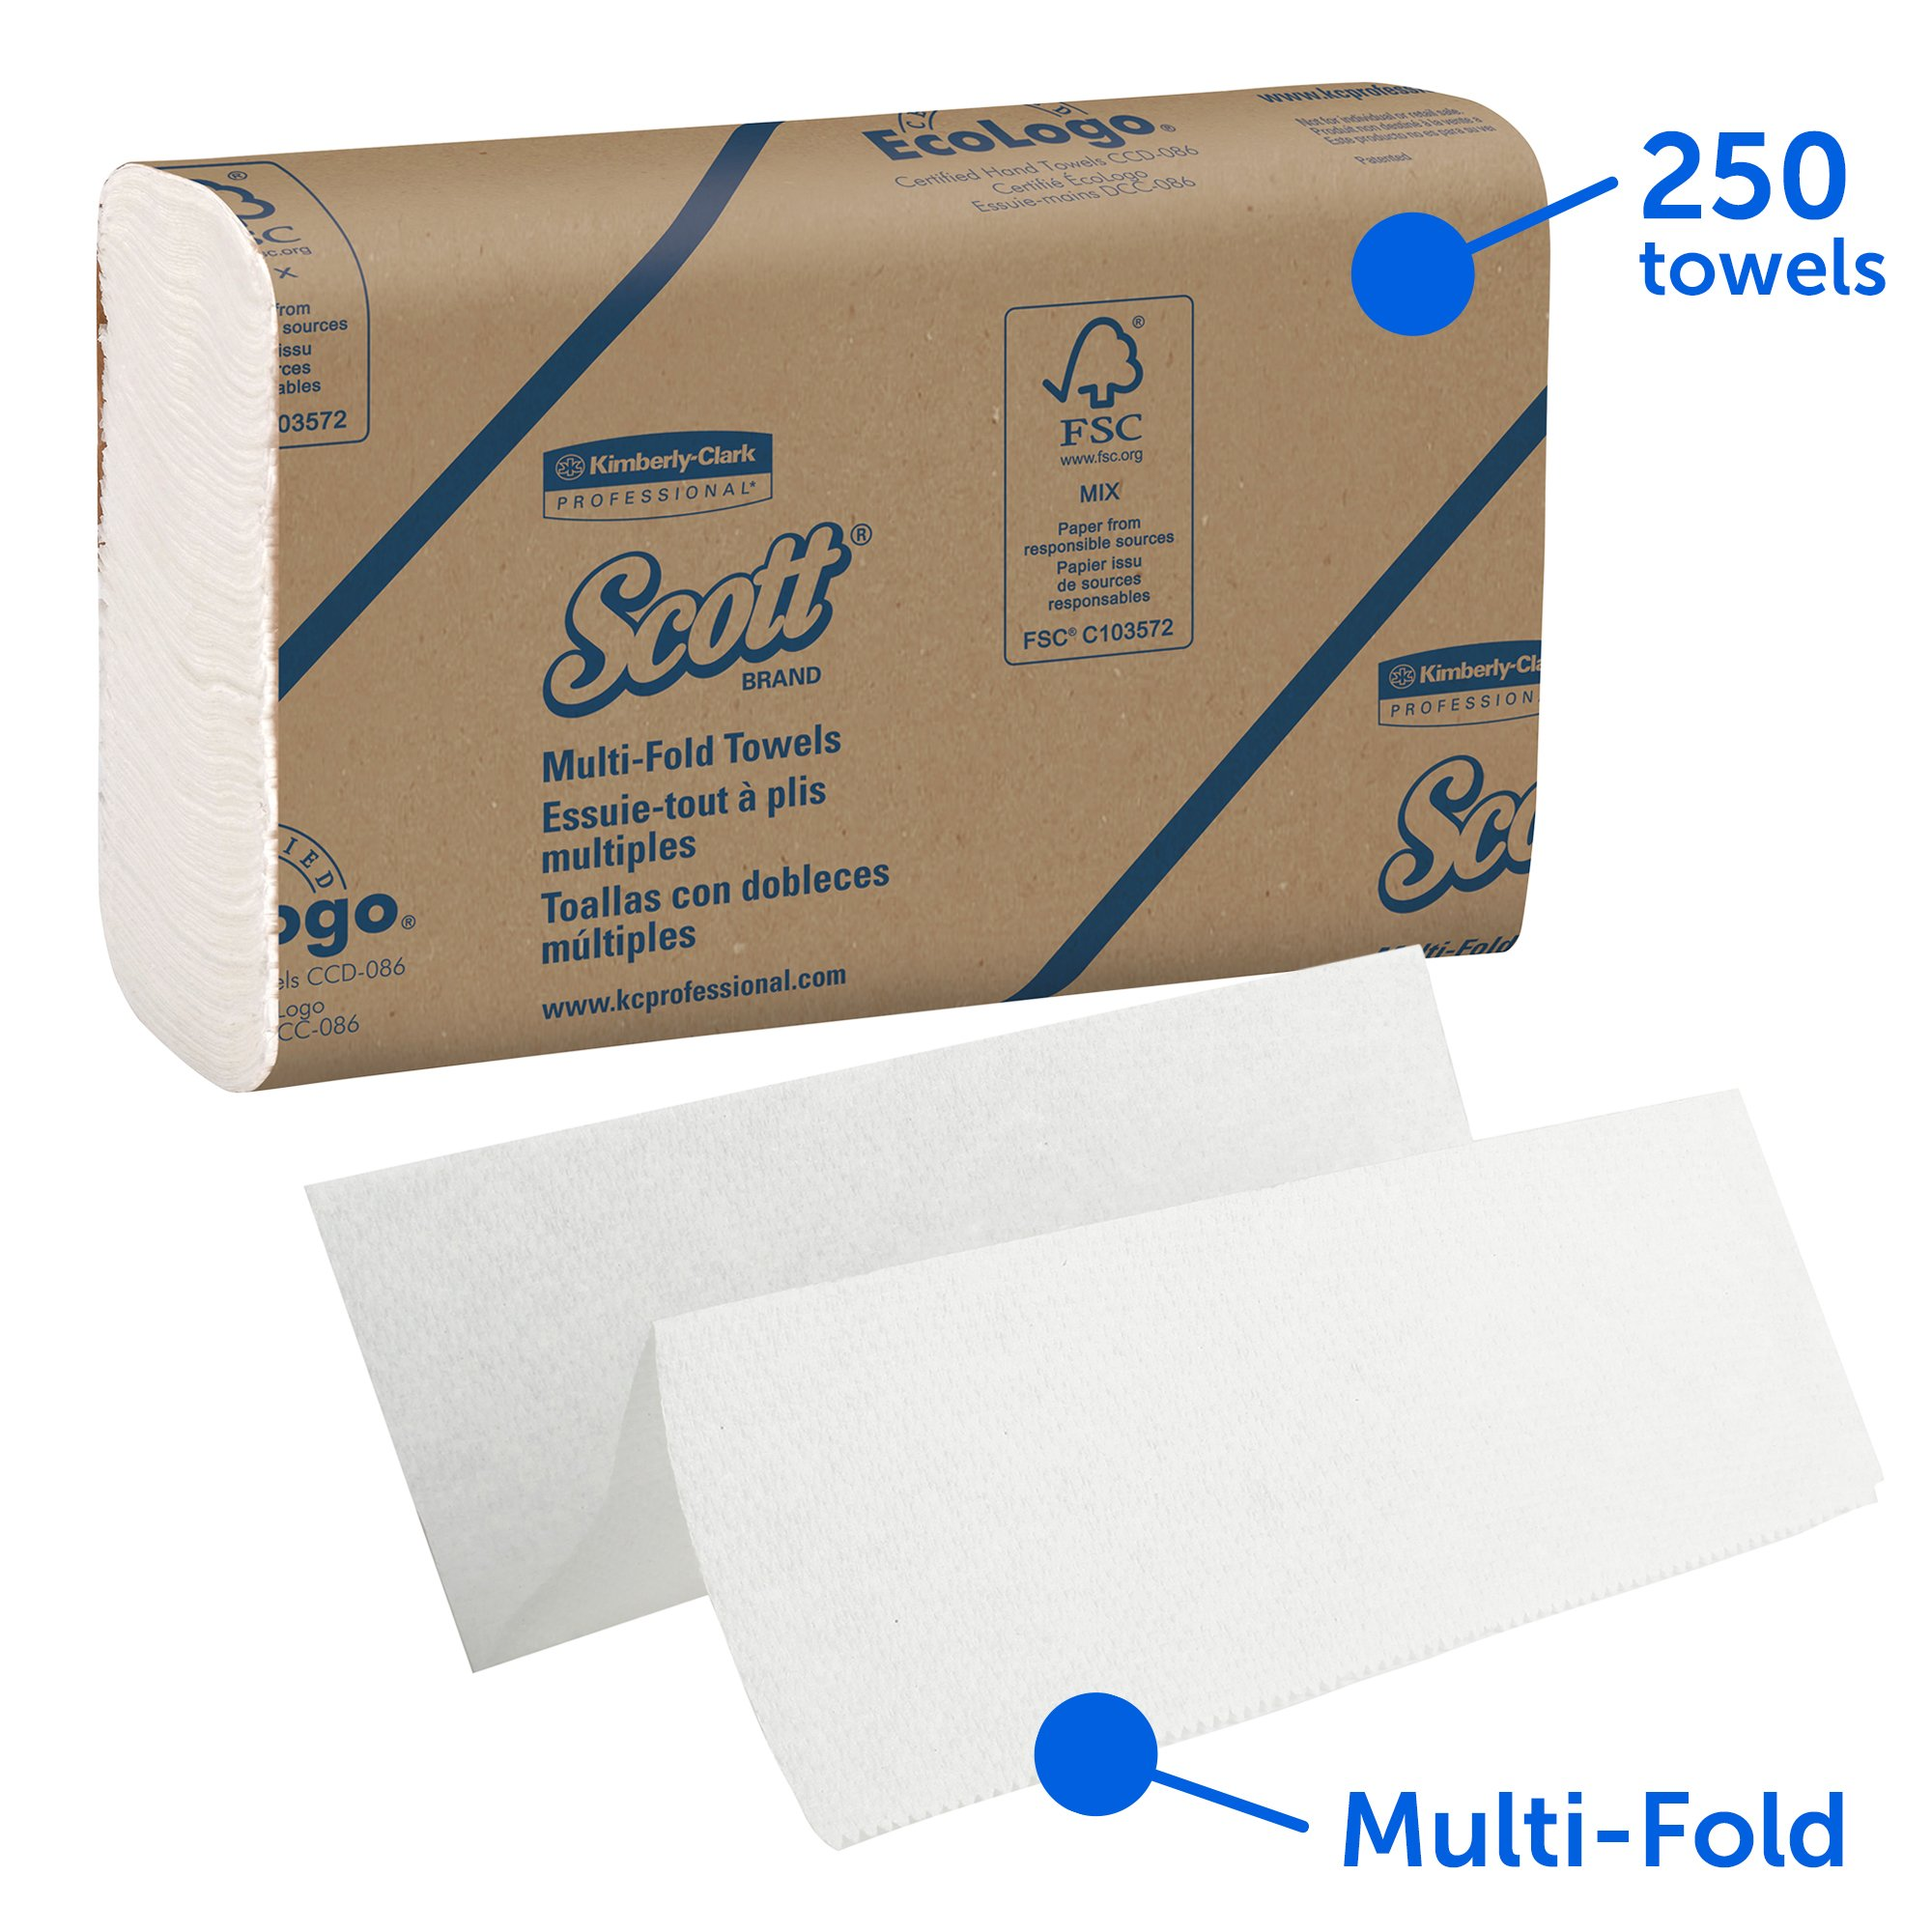 Scott 03650 Multi-Fold Towels, Absorbency Pockets, 9 2/5 x 9 1/5, White, 250 Sheets per Pack (Case of 12 Packs)